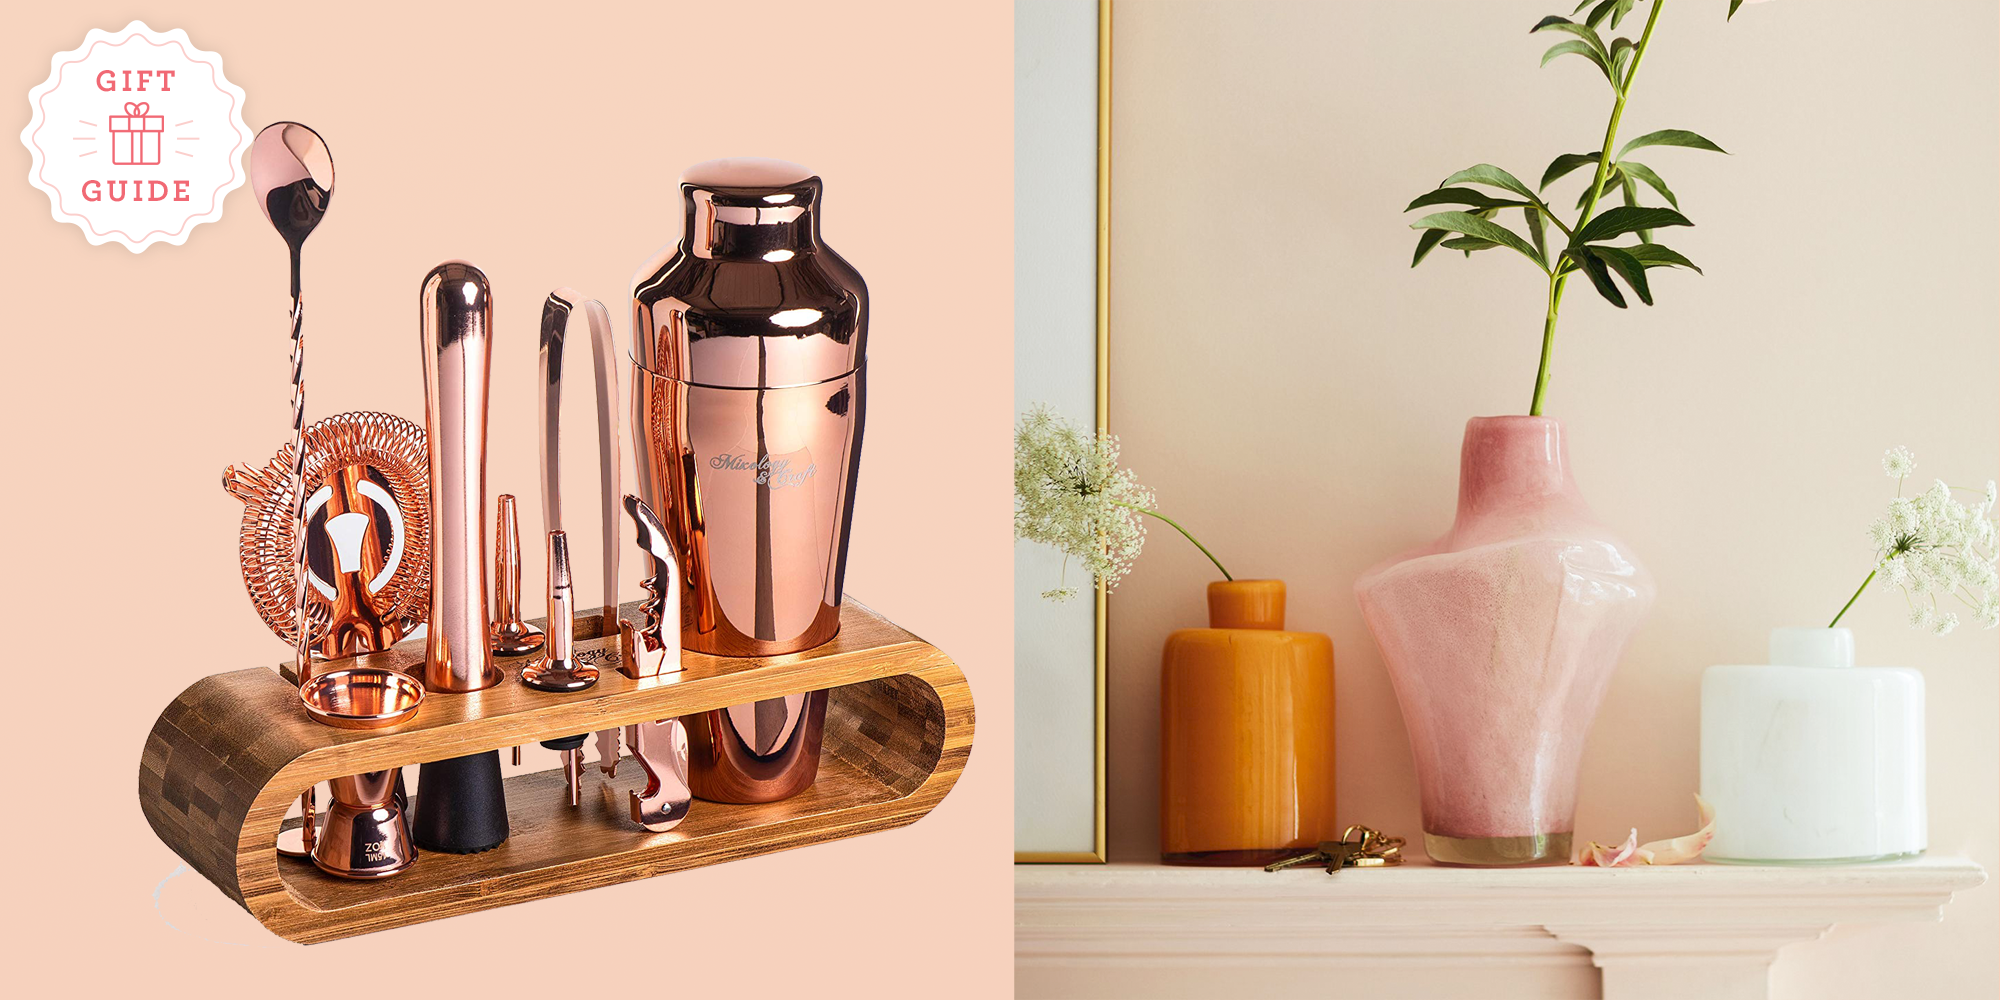 Luxury gift ideas for new homeowners